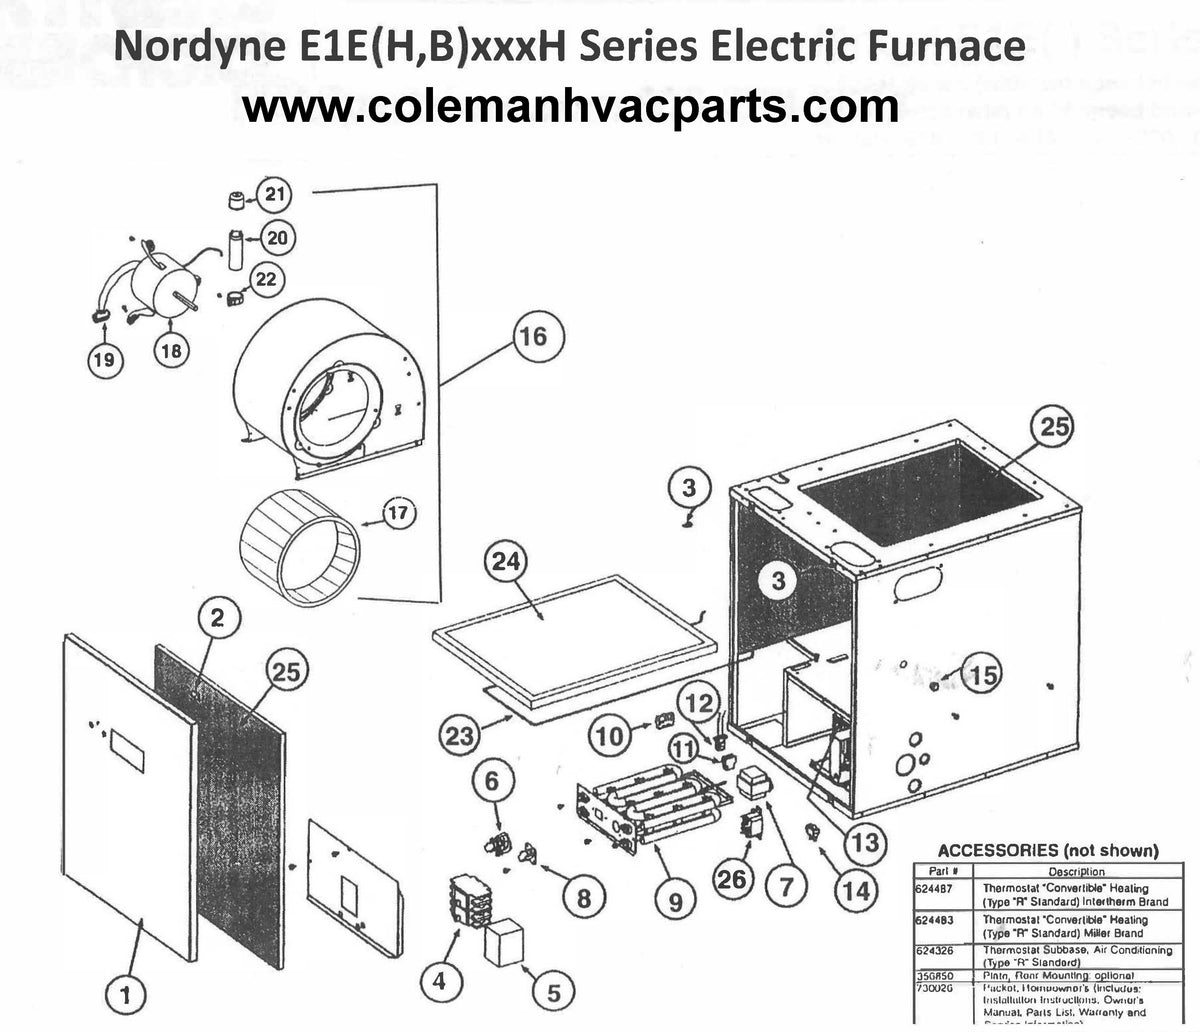 e1eh020h nordyne electric furnace parts  u2013 hvacpartstore